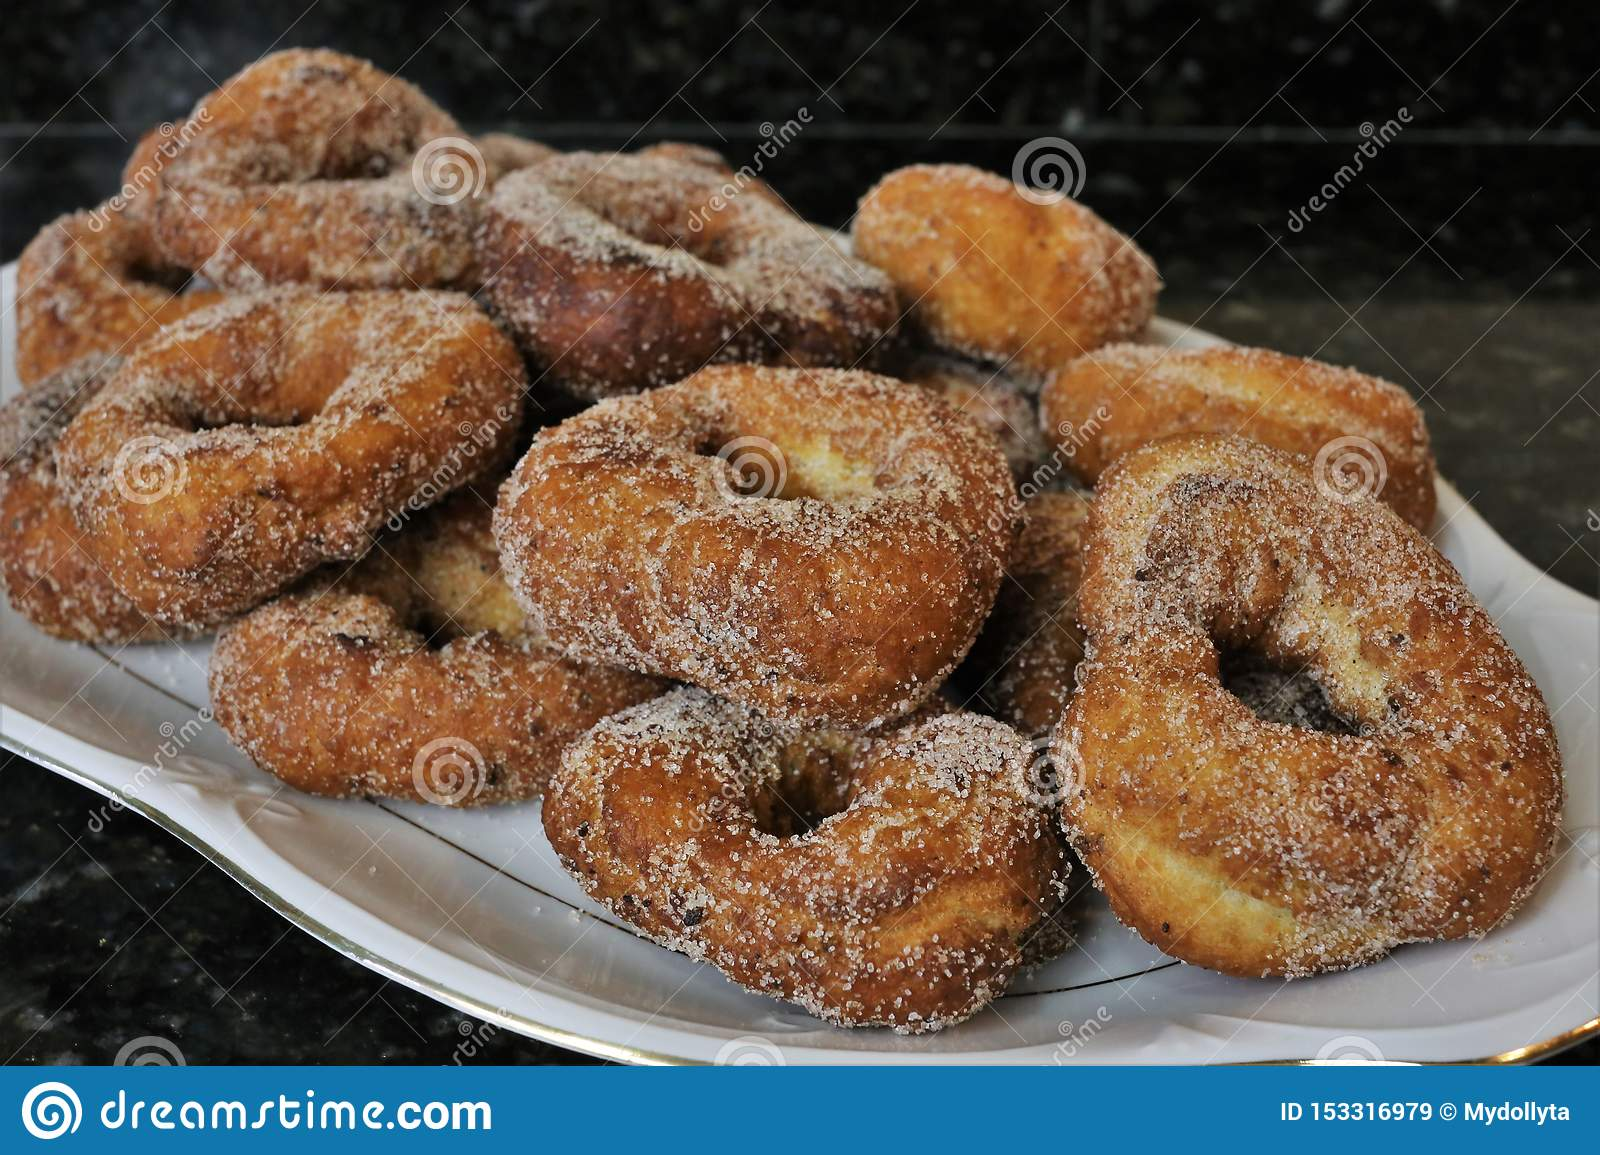 Fried donuts with sugar a typical sweet in Easter and Lent